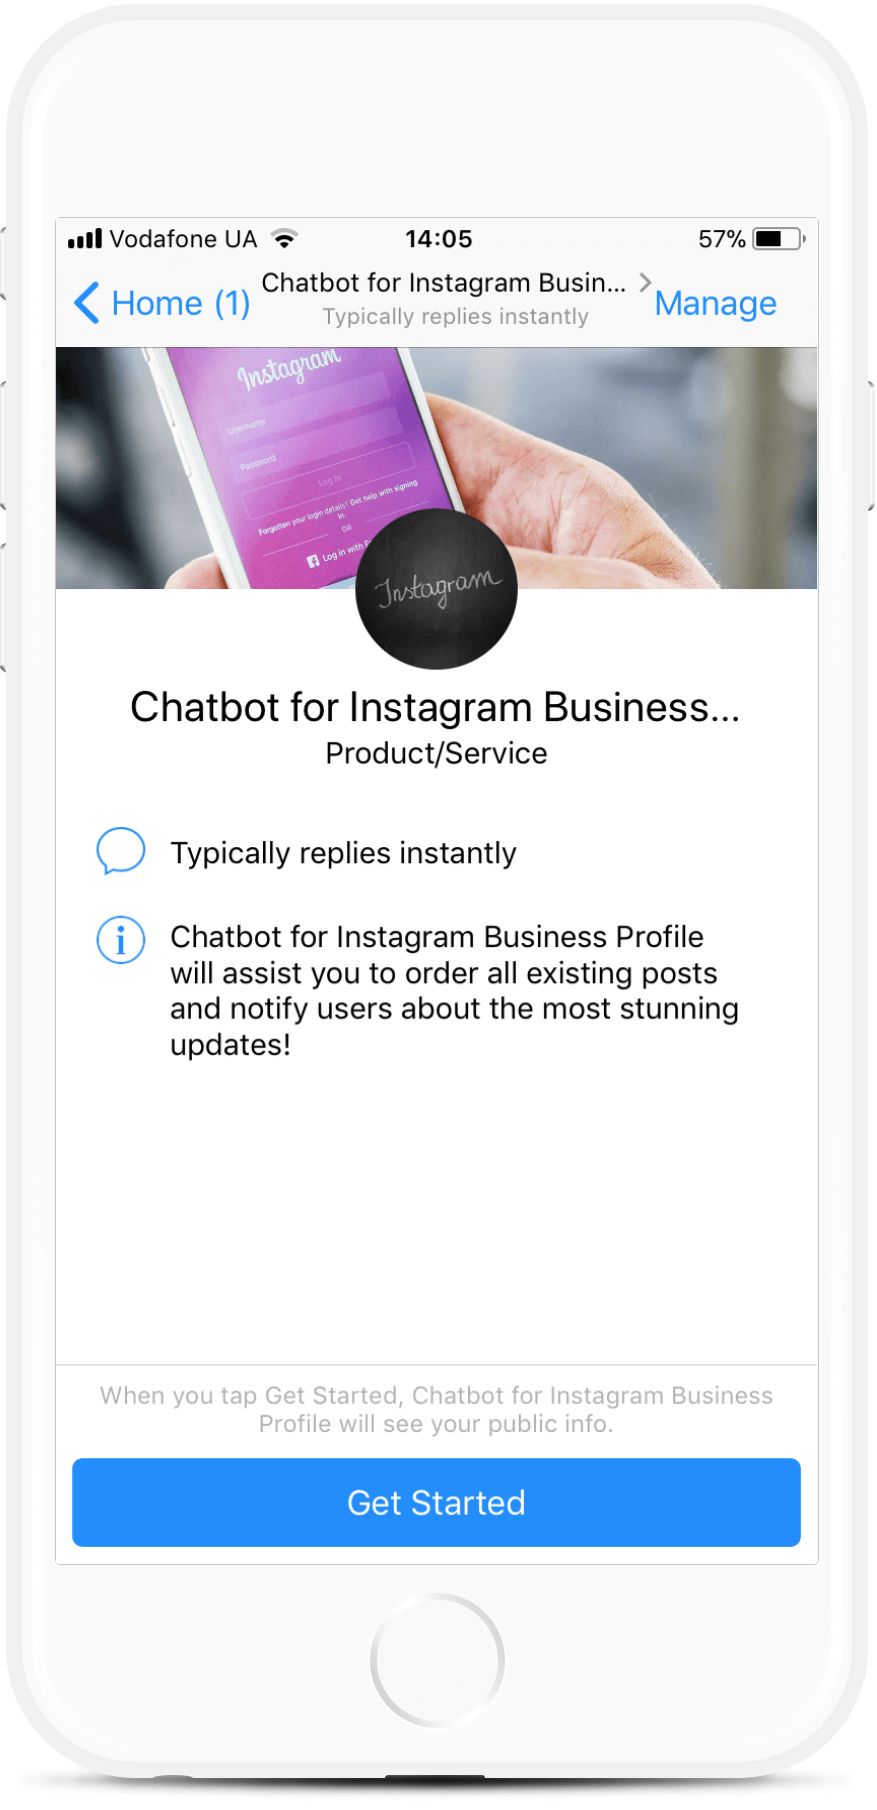 Chatbot for Instagram Business Profile